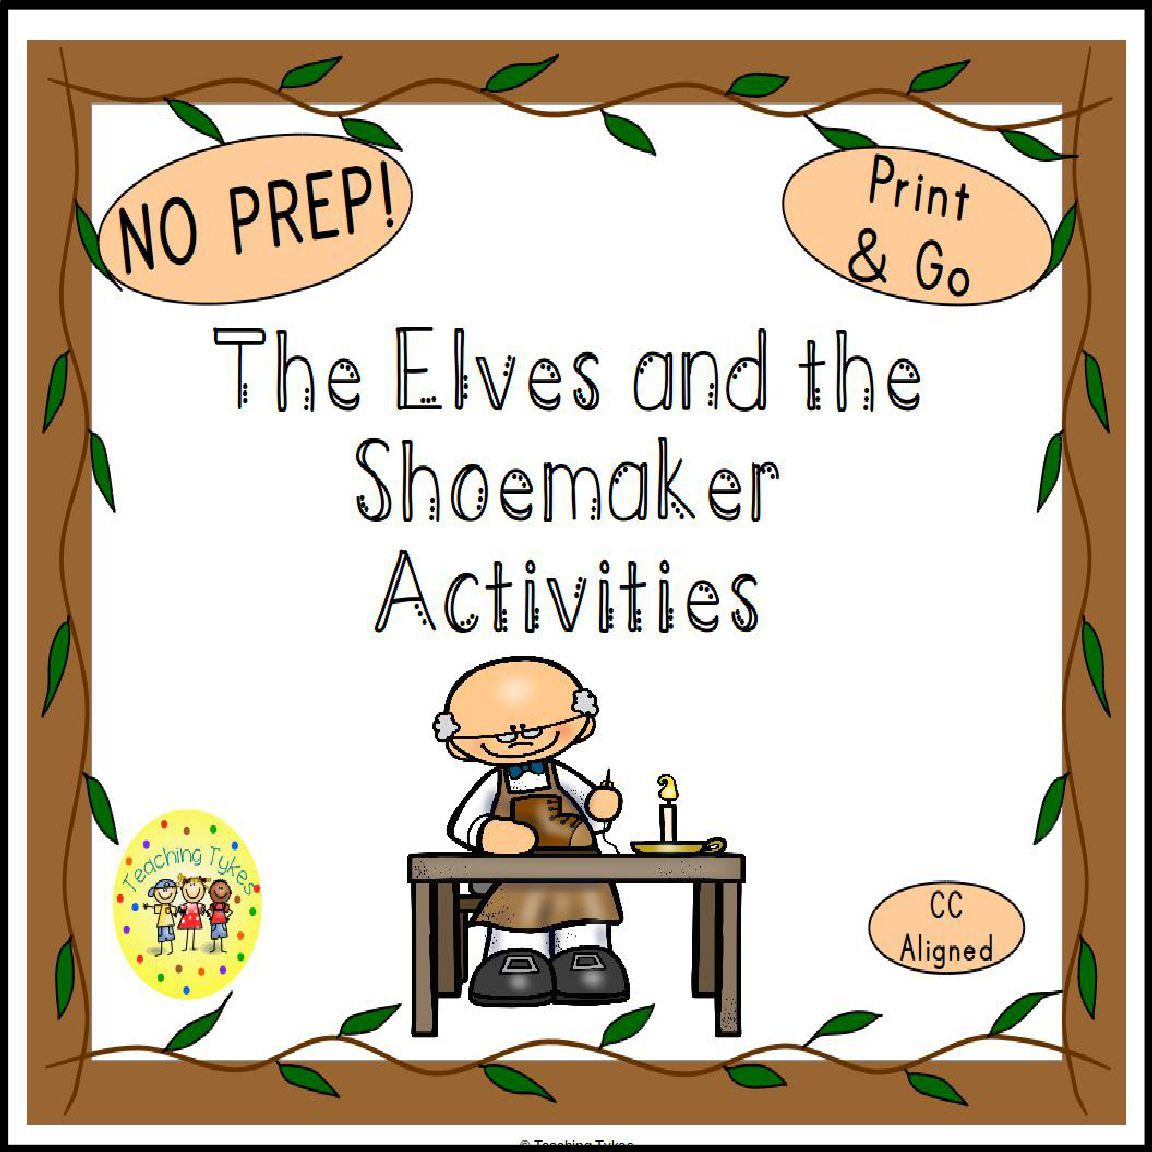 The Elves And The Shoemaker Activities Theelvesandtheshoemaker Fairytales Theelvesandtheshoemakeractivities Fairytalesactivitie The Elf Activities Teaching